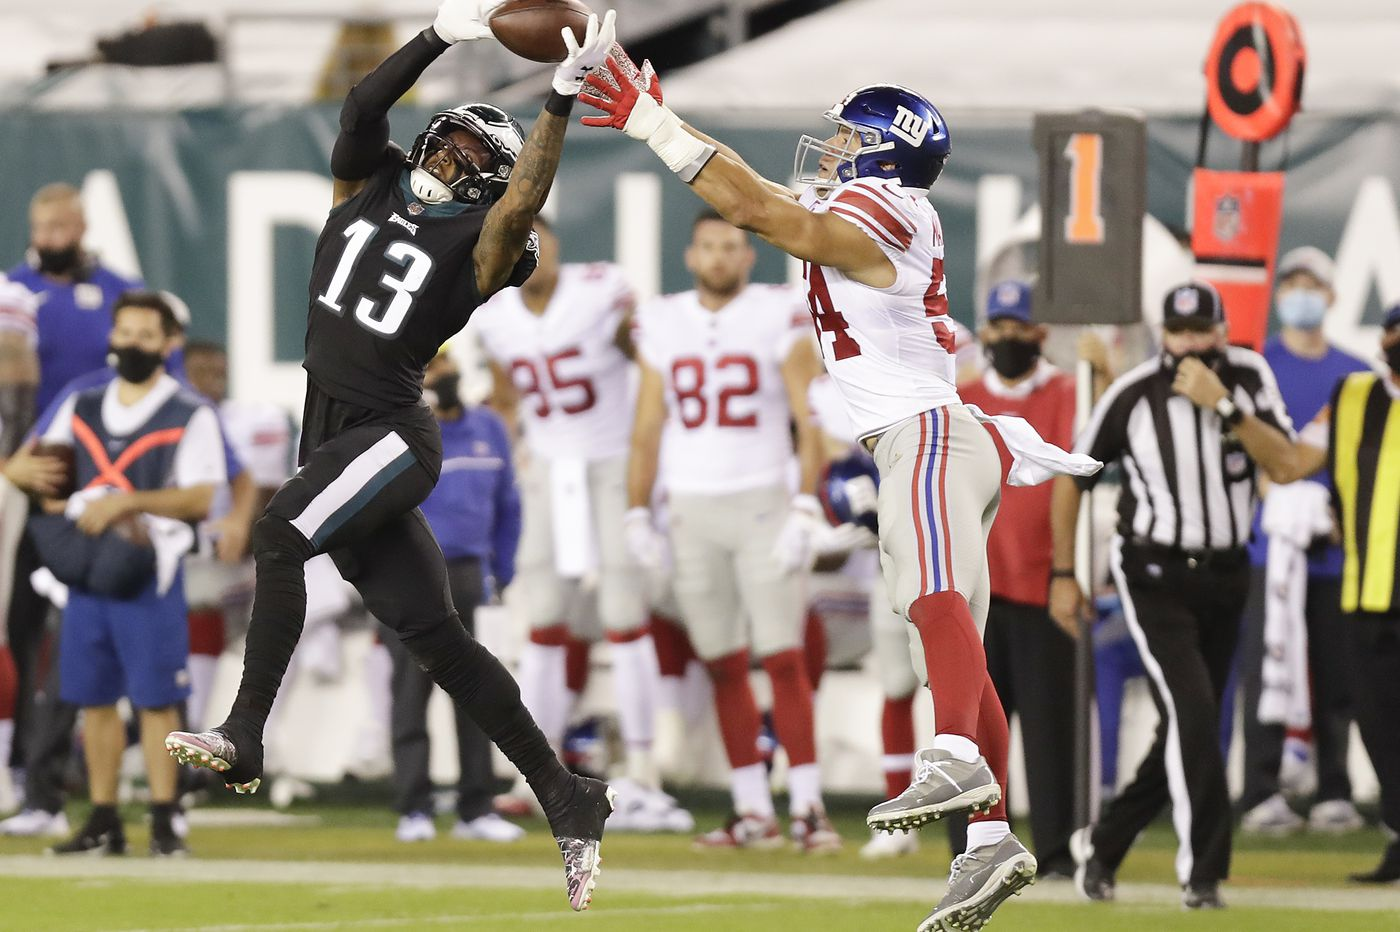 Travis Fulgham's emergence as Eagles' go-to WR doesn't surprise his coaches or teammates